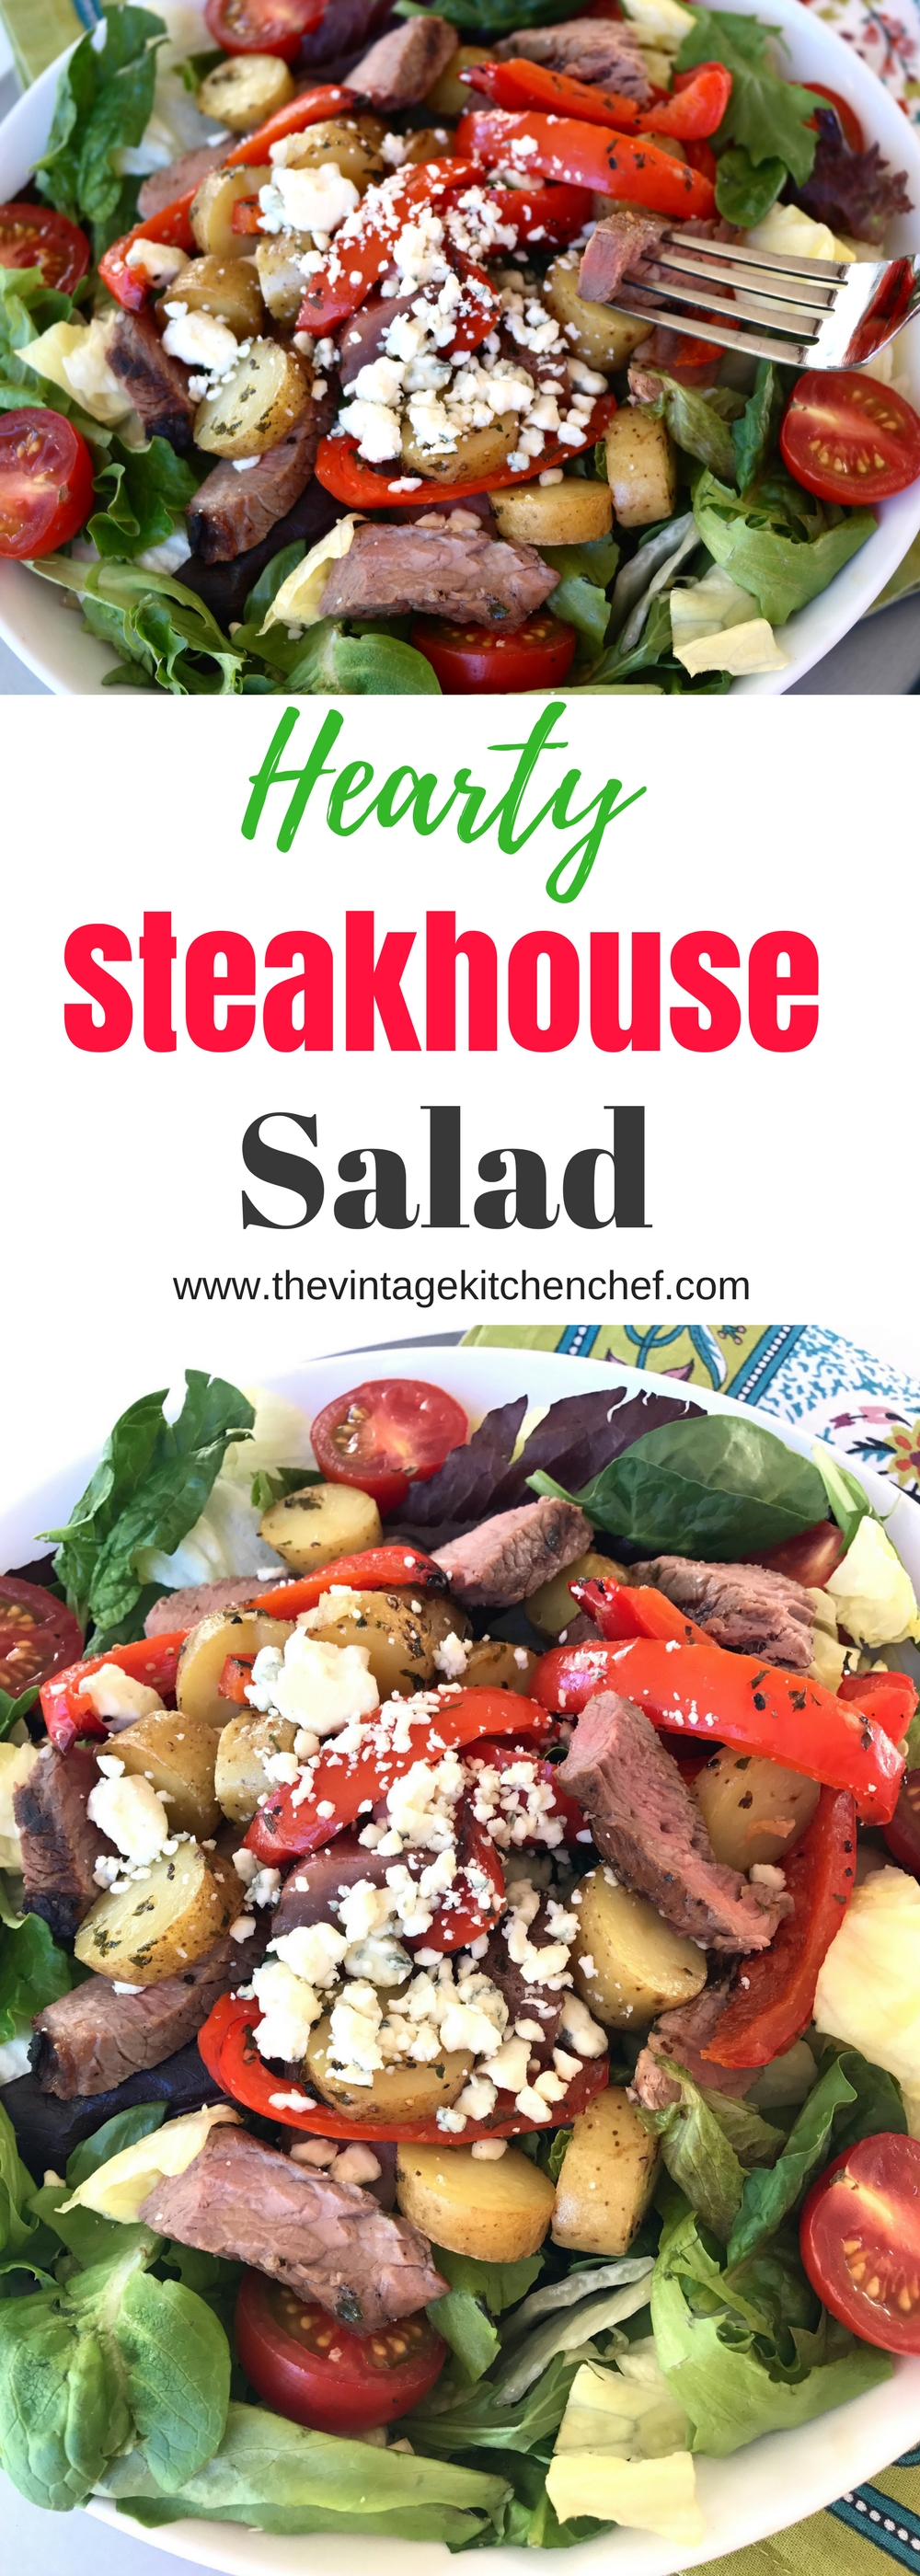 Hearty Steakhouse Salad is a real meat and potatoes meal! This yummy salad has all the flavors of your favorite steakhouse meal.